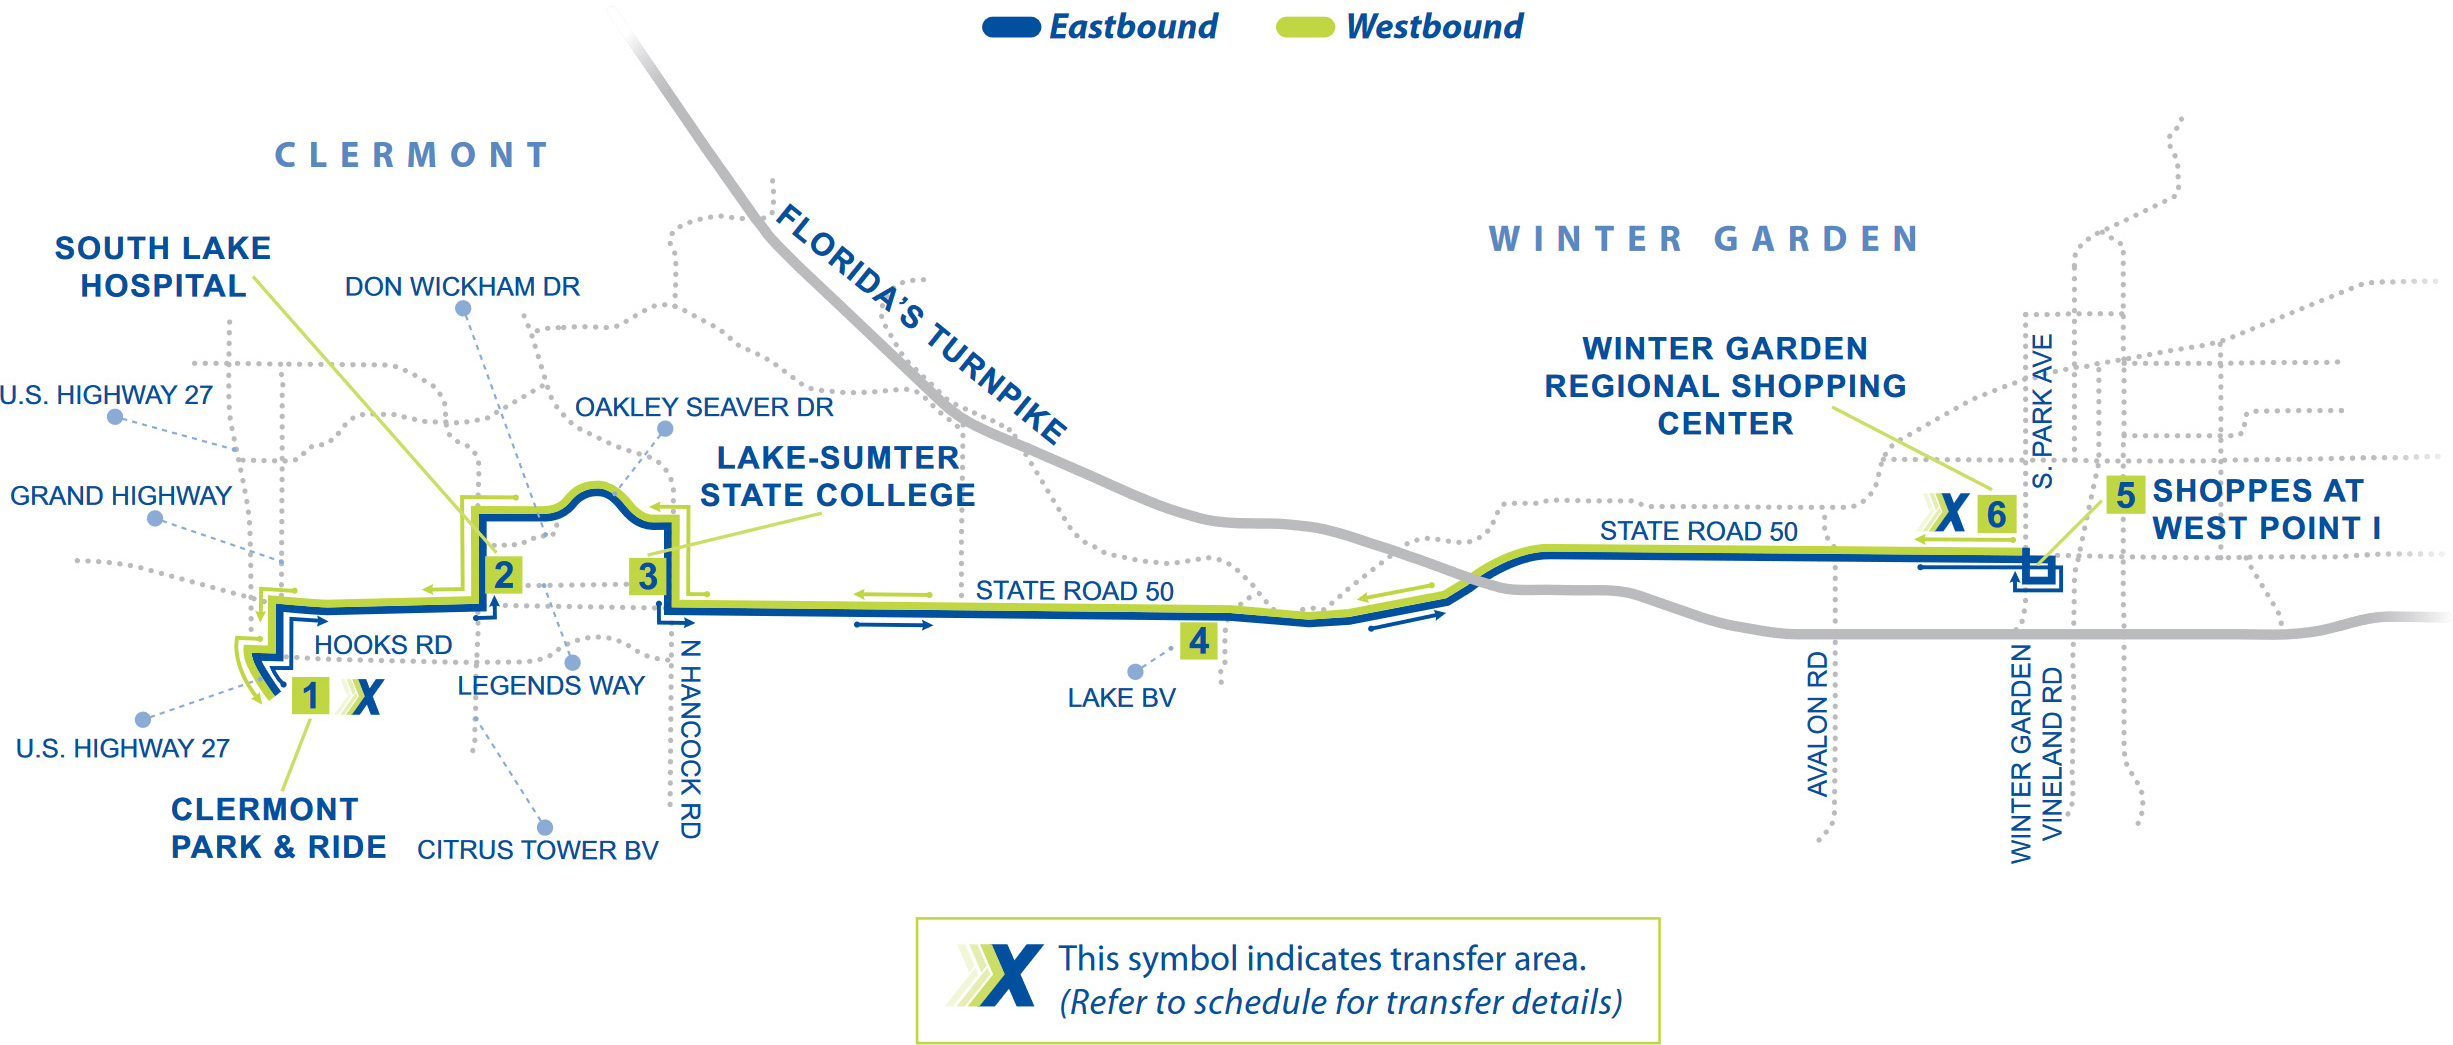 Route 50 East Map